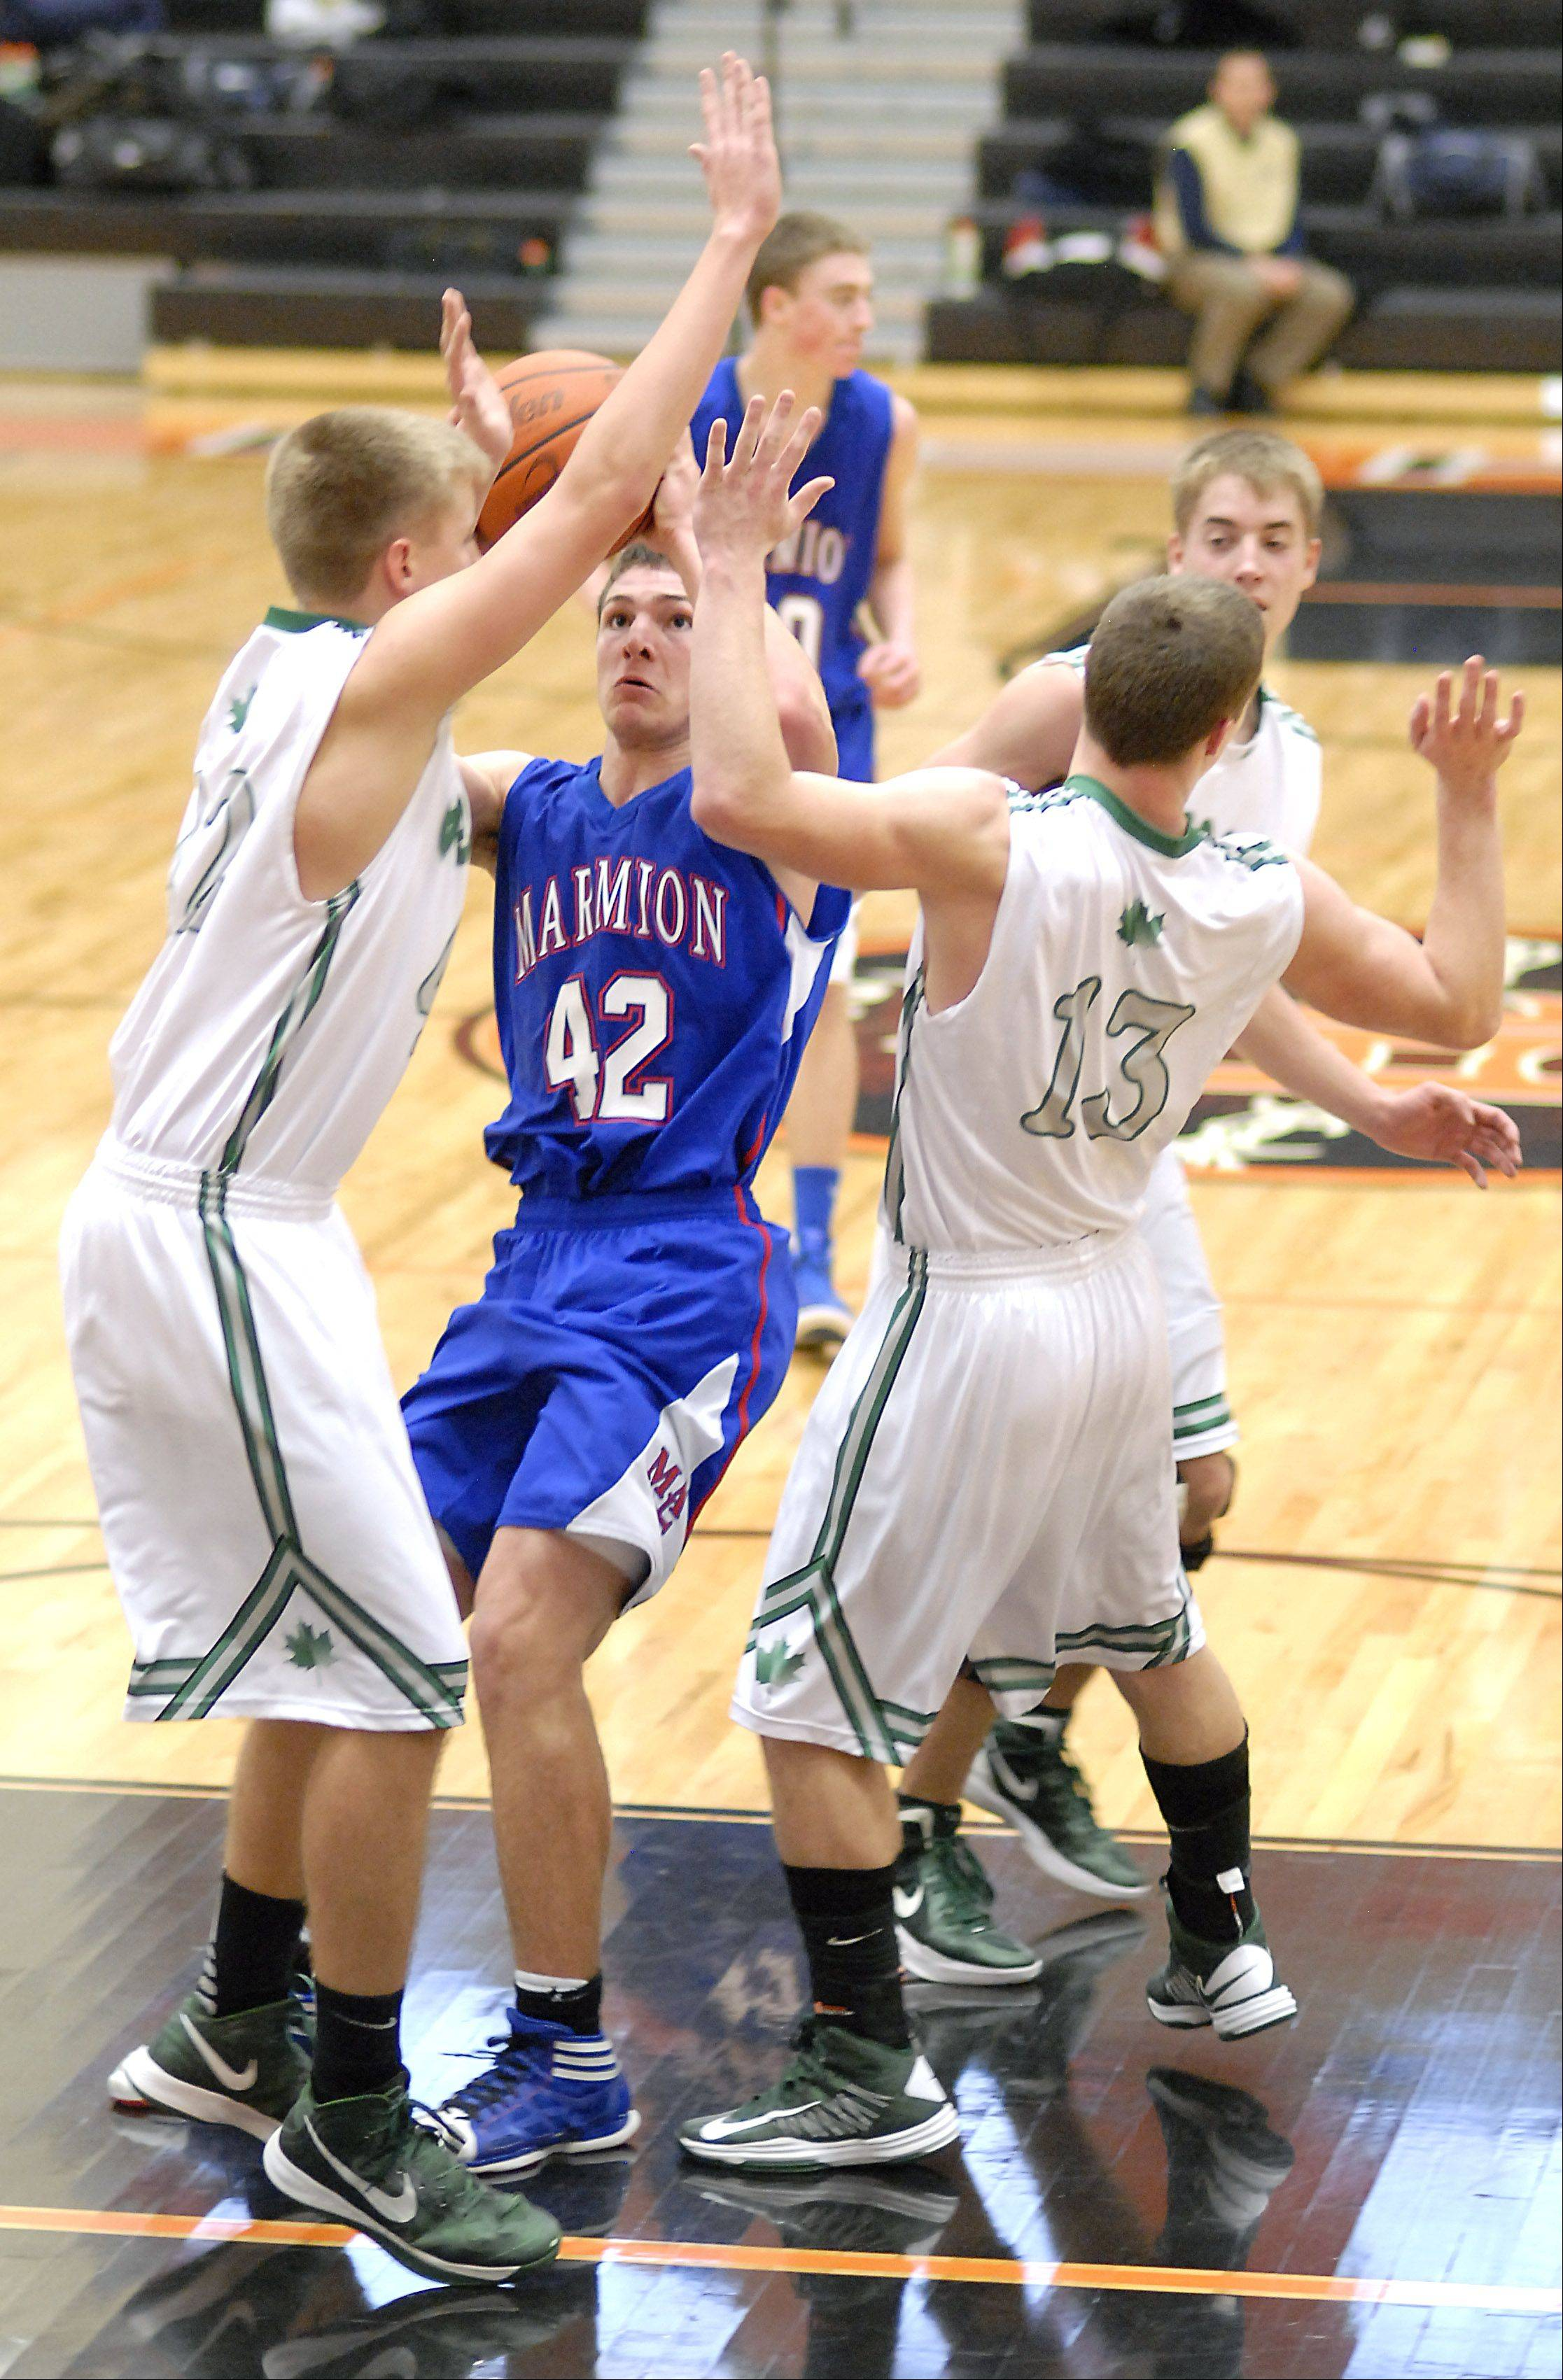 Marmion's Jordan Glasgow shoots past a block by Geneseo's Jake Scott and Luke Snyder in the third quarter of the DeKalb tournament on Saturday, December 22. 30